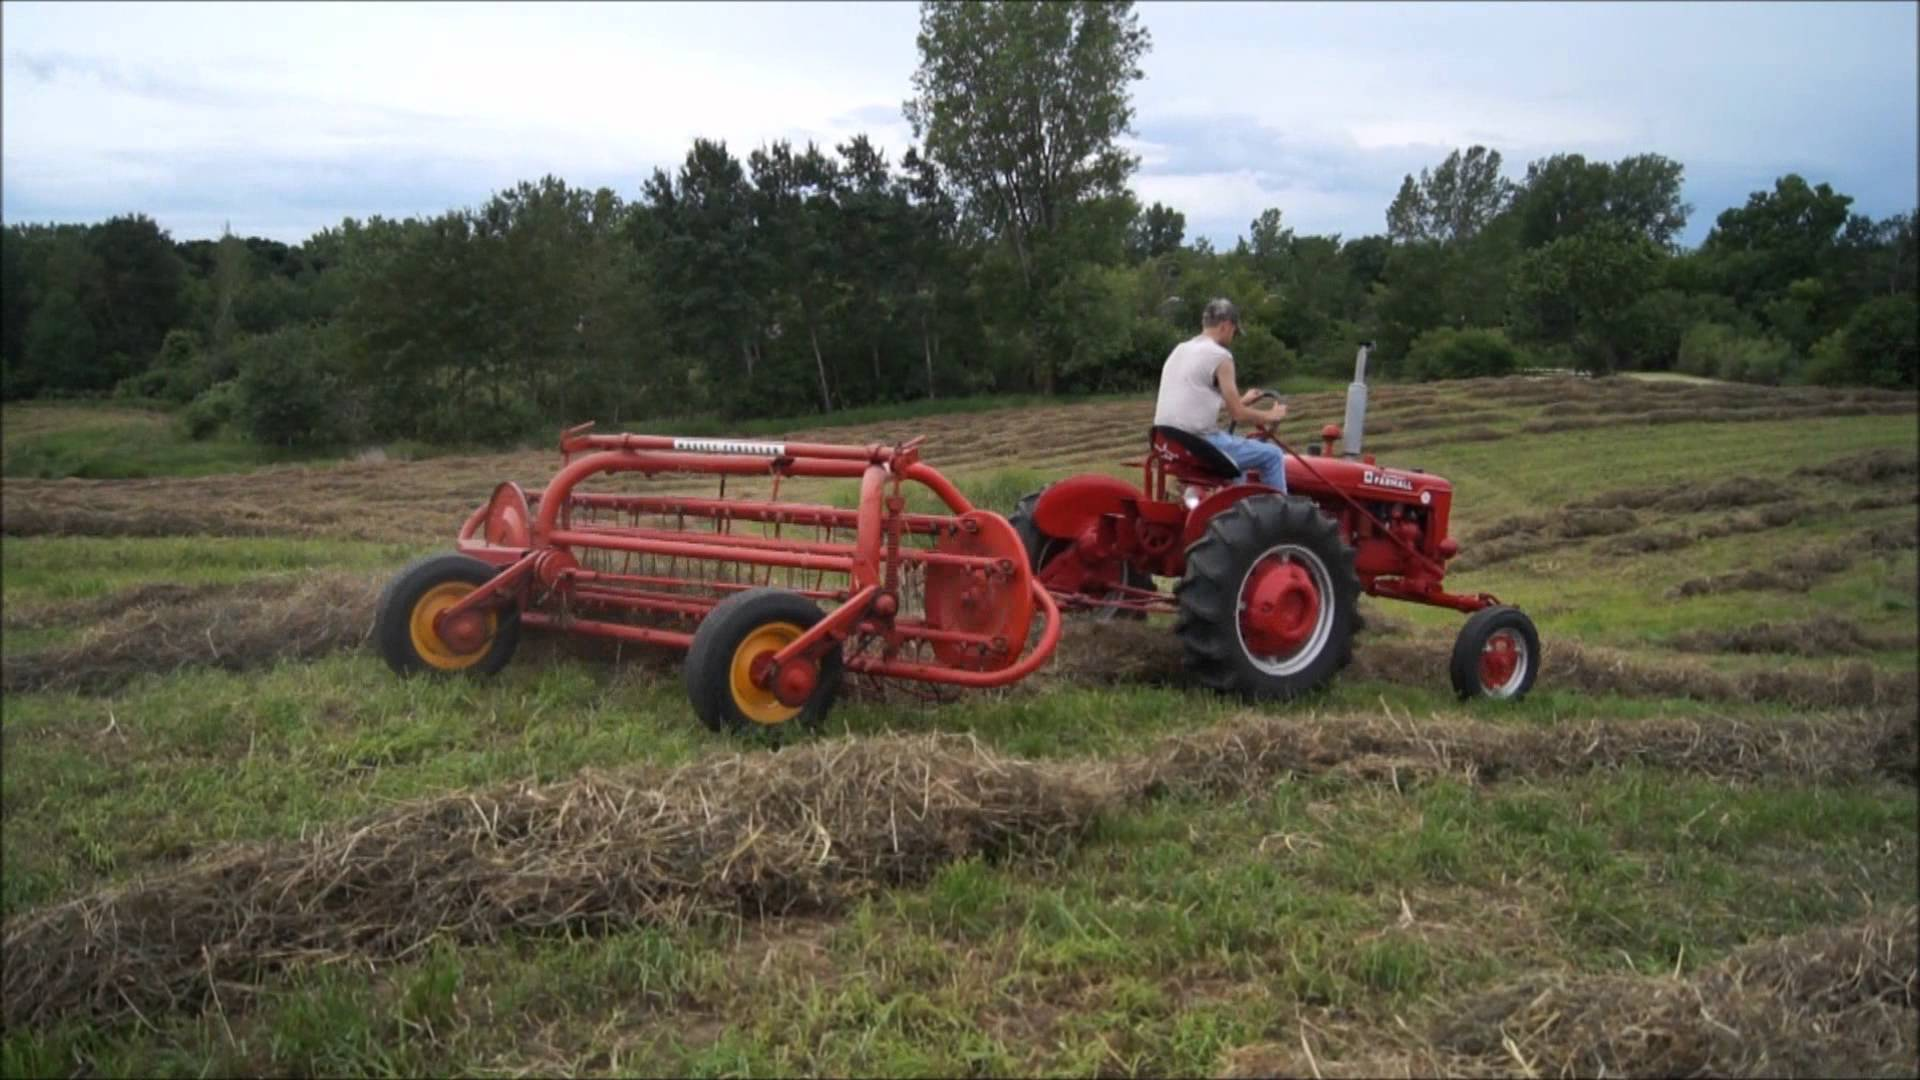 Hay Baling and Raking with Farmall Tractors - YouTube